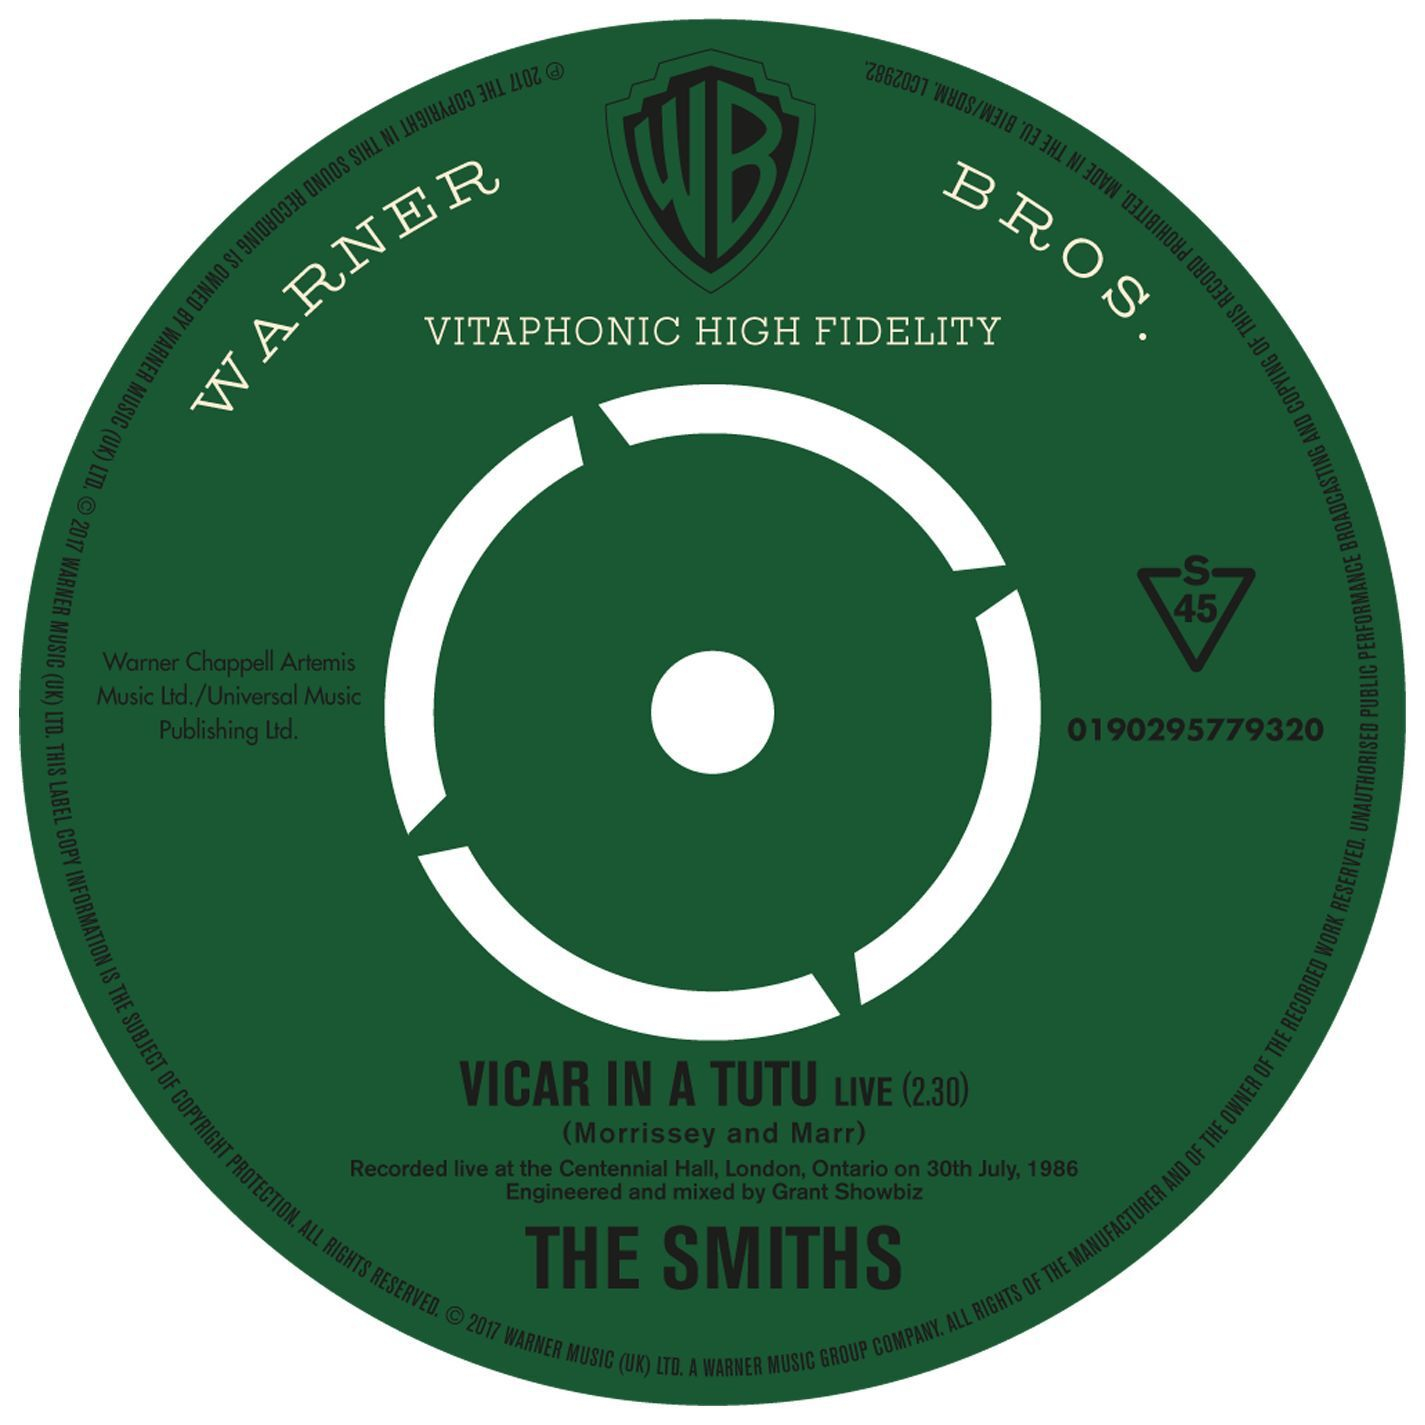 40733_40732_The_Smiths-Vicar_In_a_Tutu_Live_1.jpg